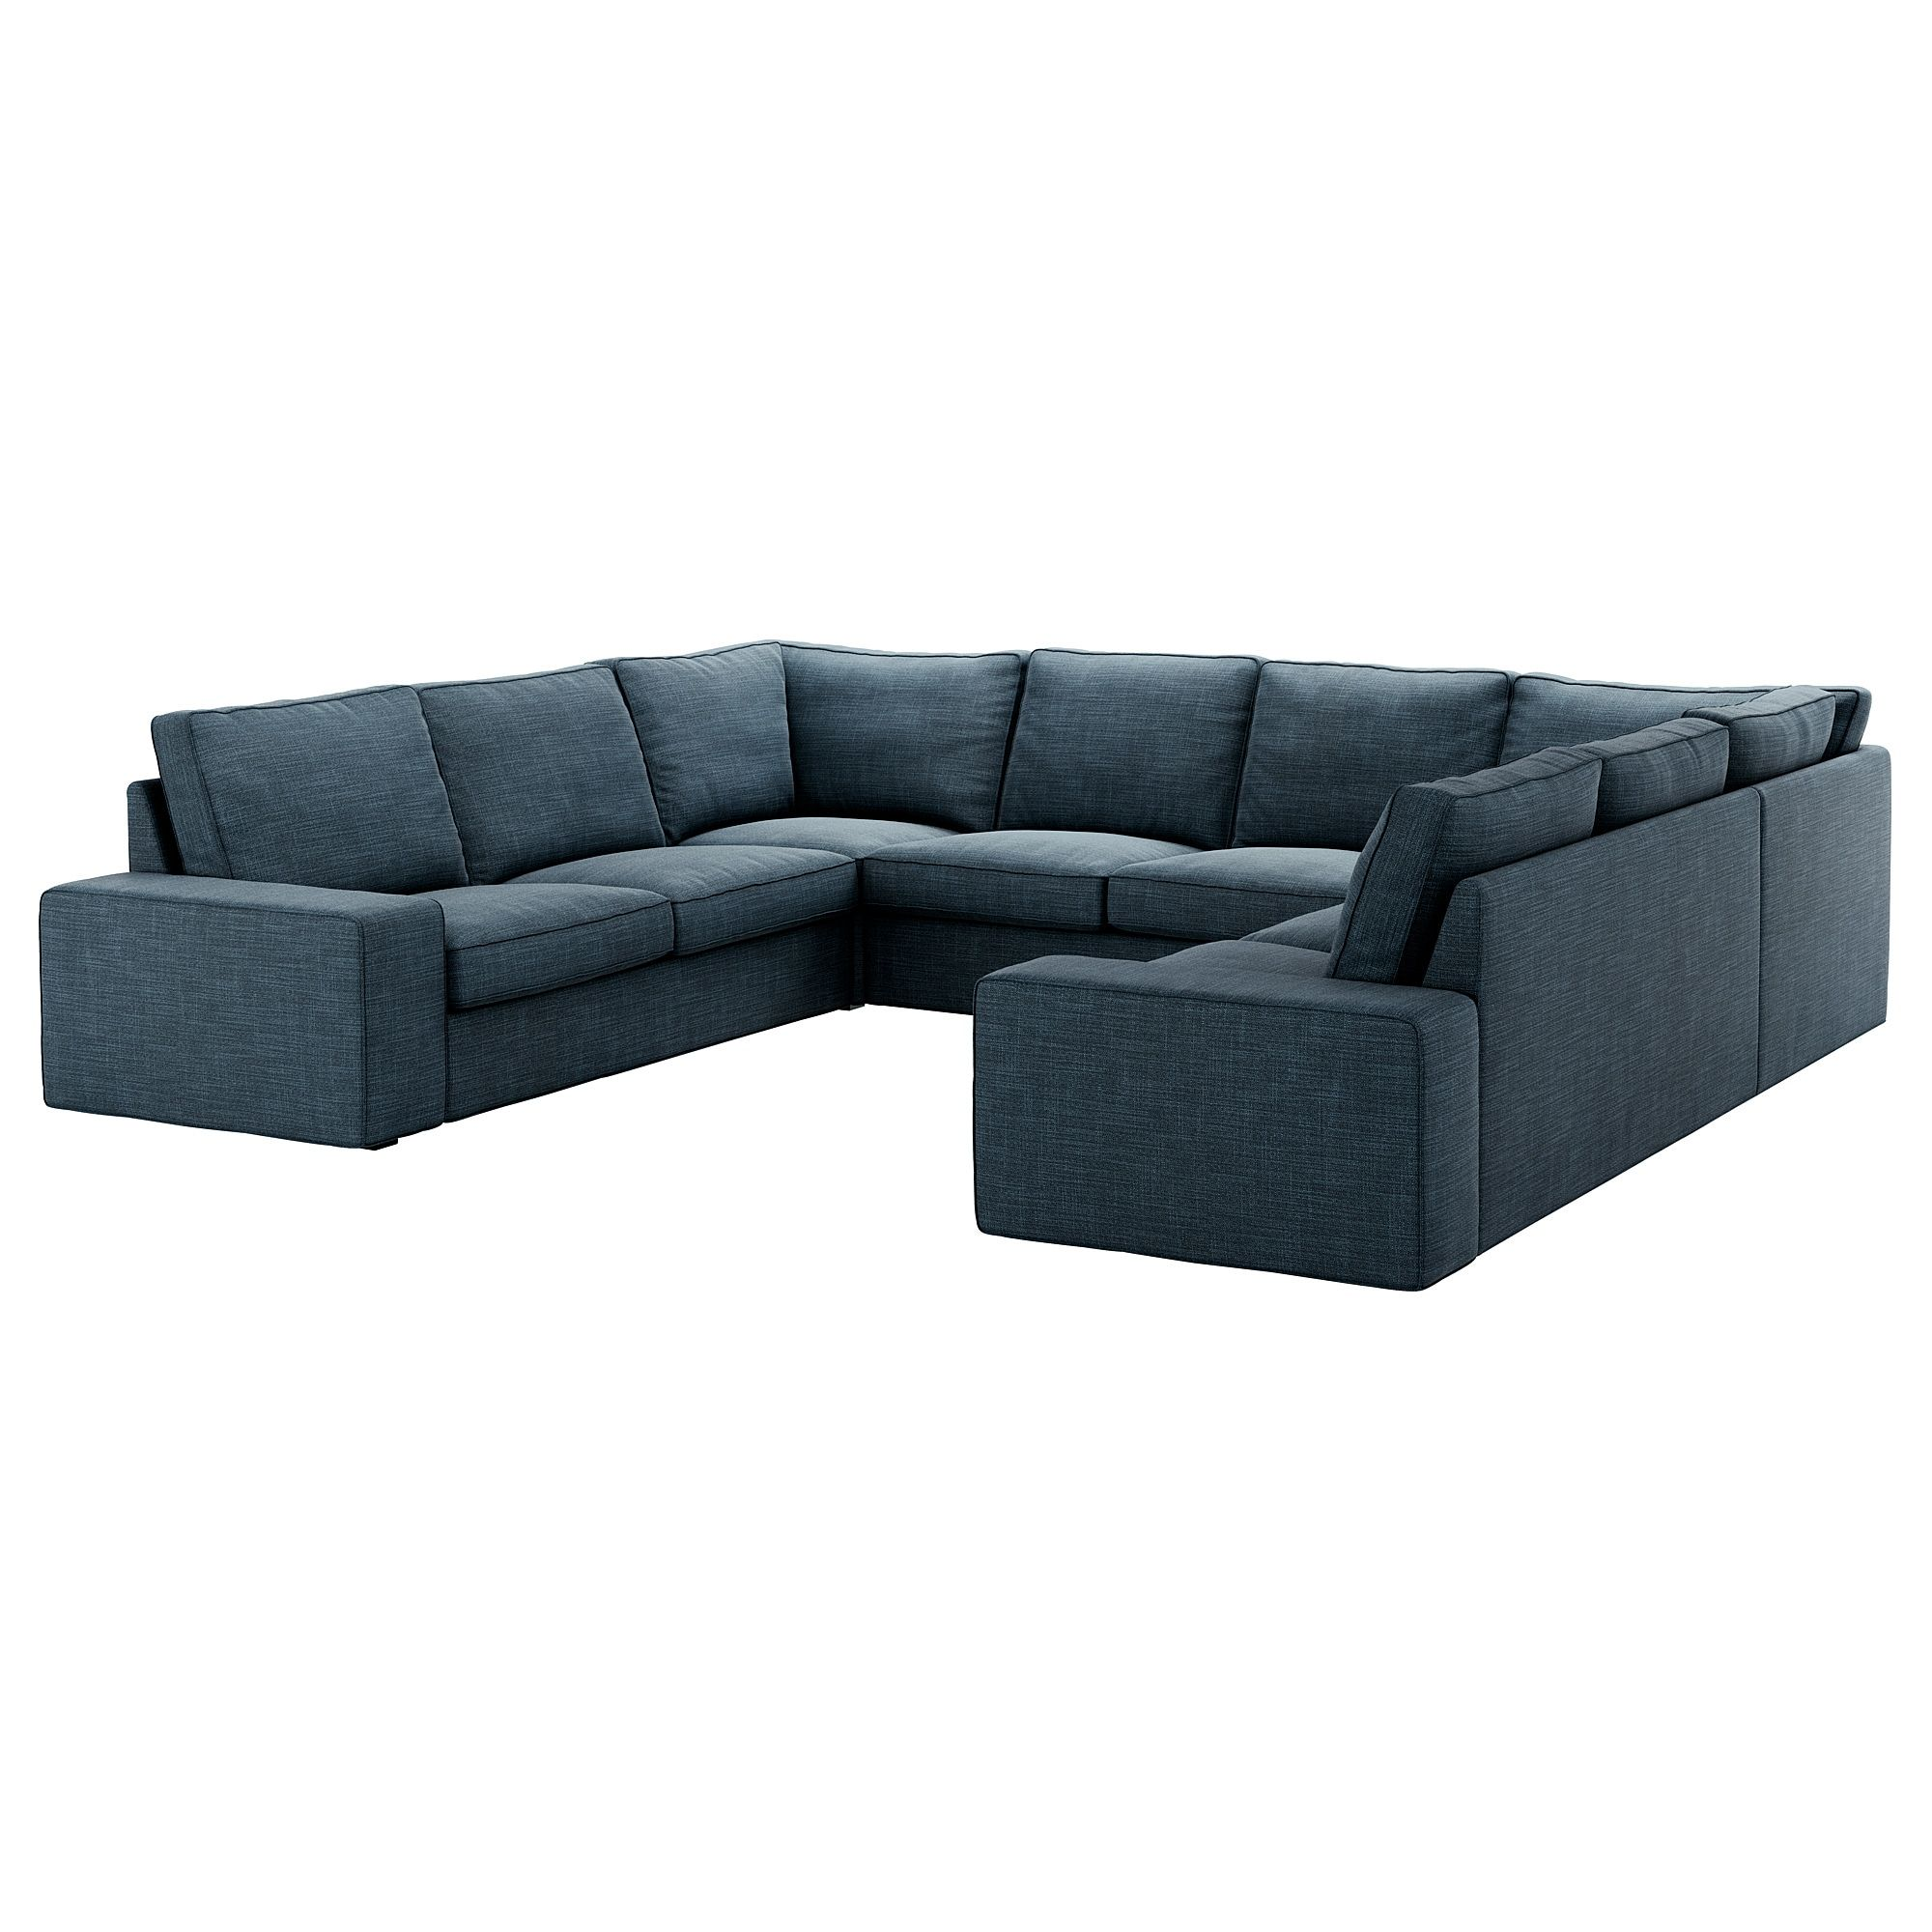 Kivik Sectional 6 Seat 6 Seat Orrsta Light Gray Ikea Sessel Sofa Sessel Sofa